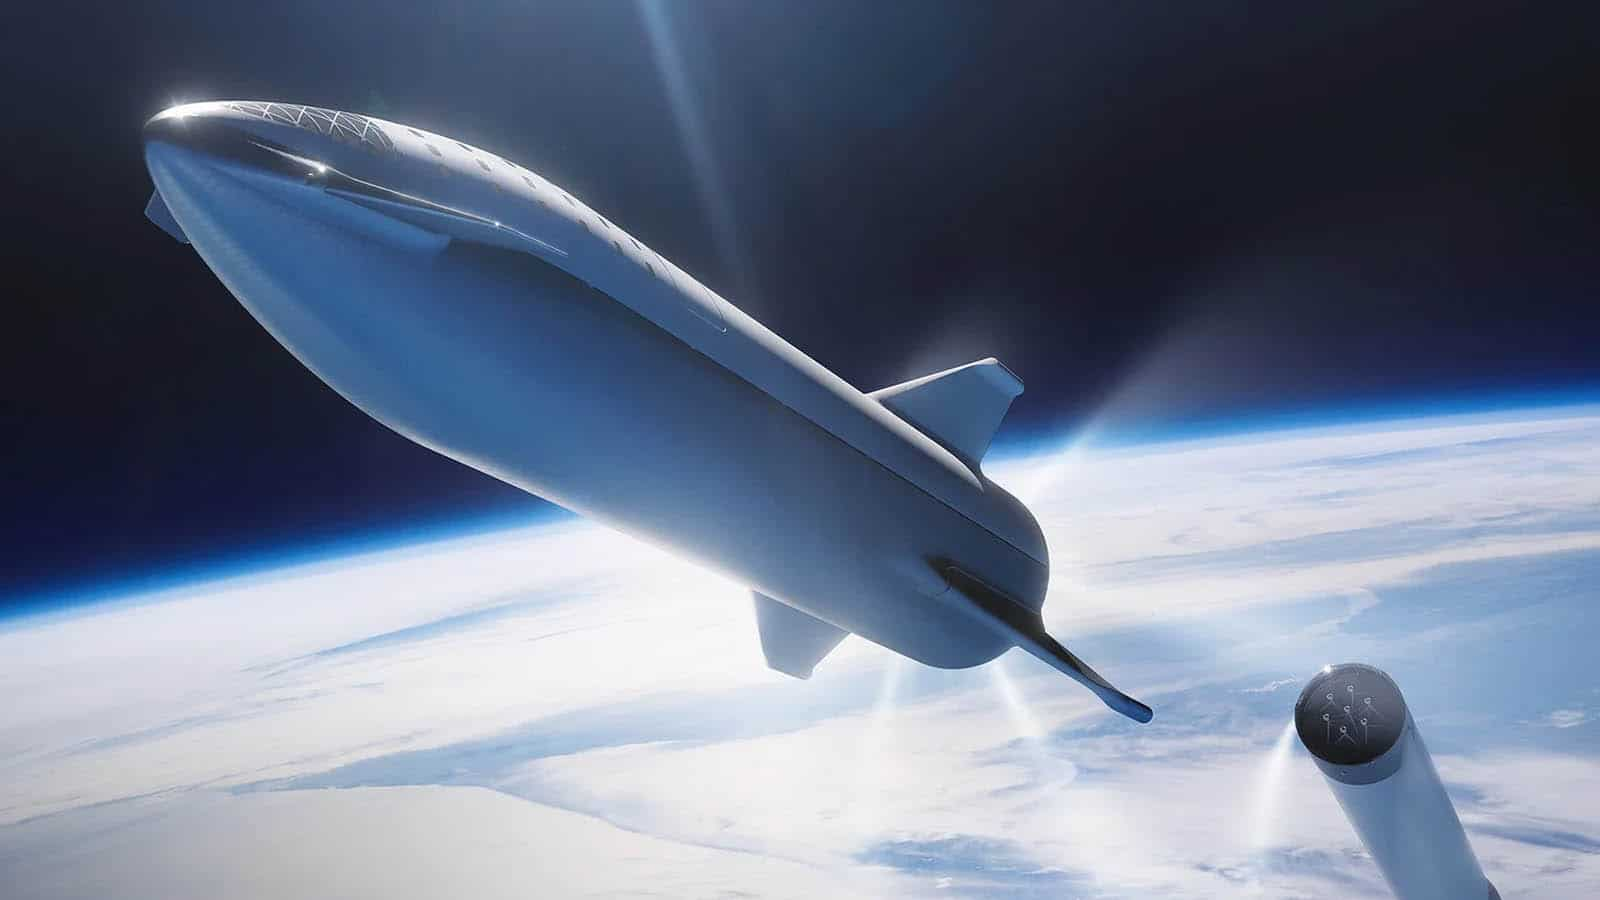 spacex starship rocket in space